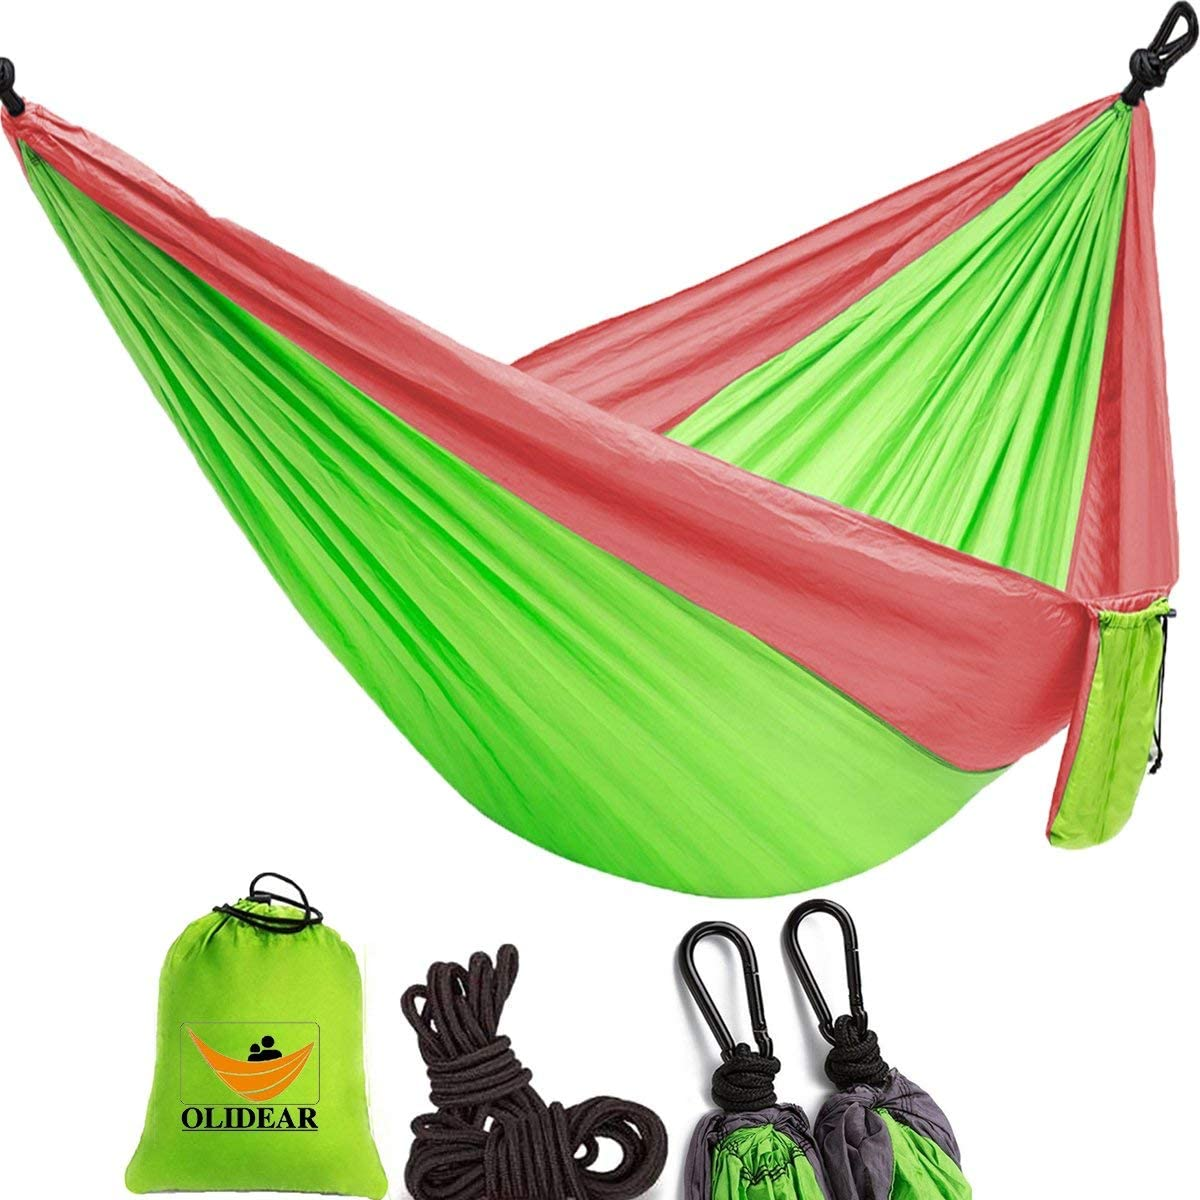 OLIDEAR Portable Parachute Nylon Hammocks Ultralight Camping Hammock Garden Hammock for Backpacking Travel Beach Yard